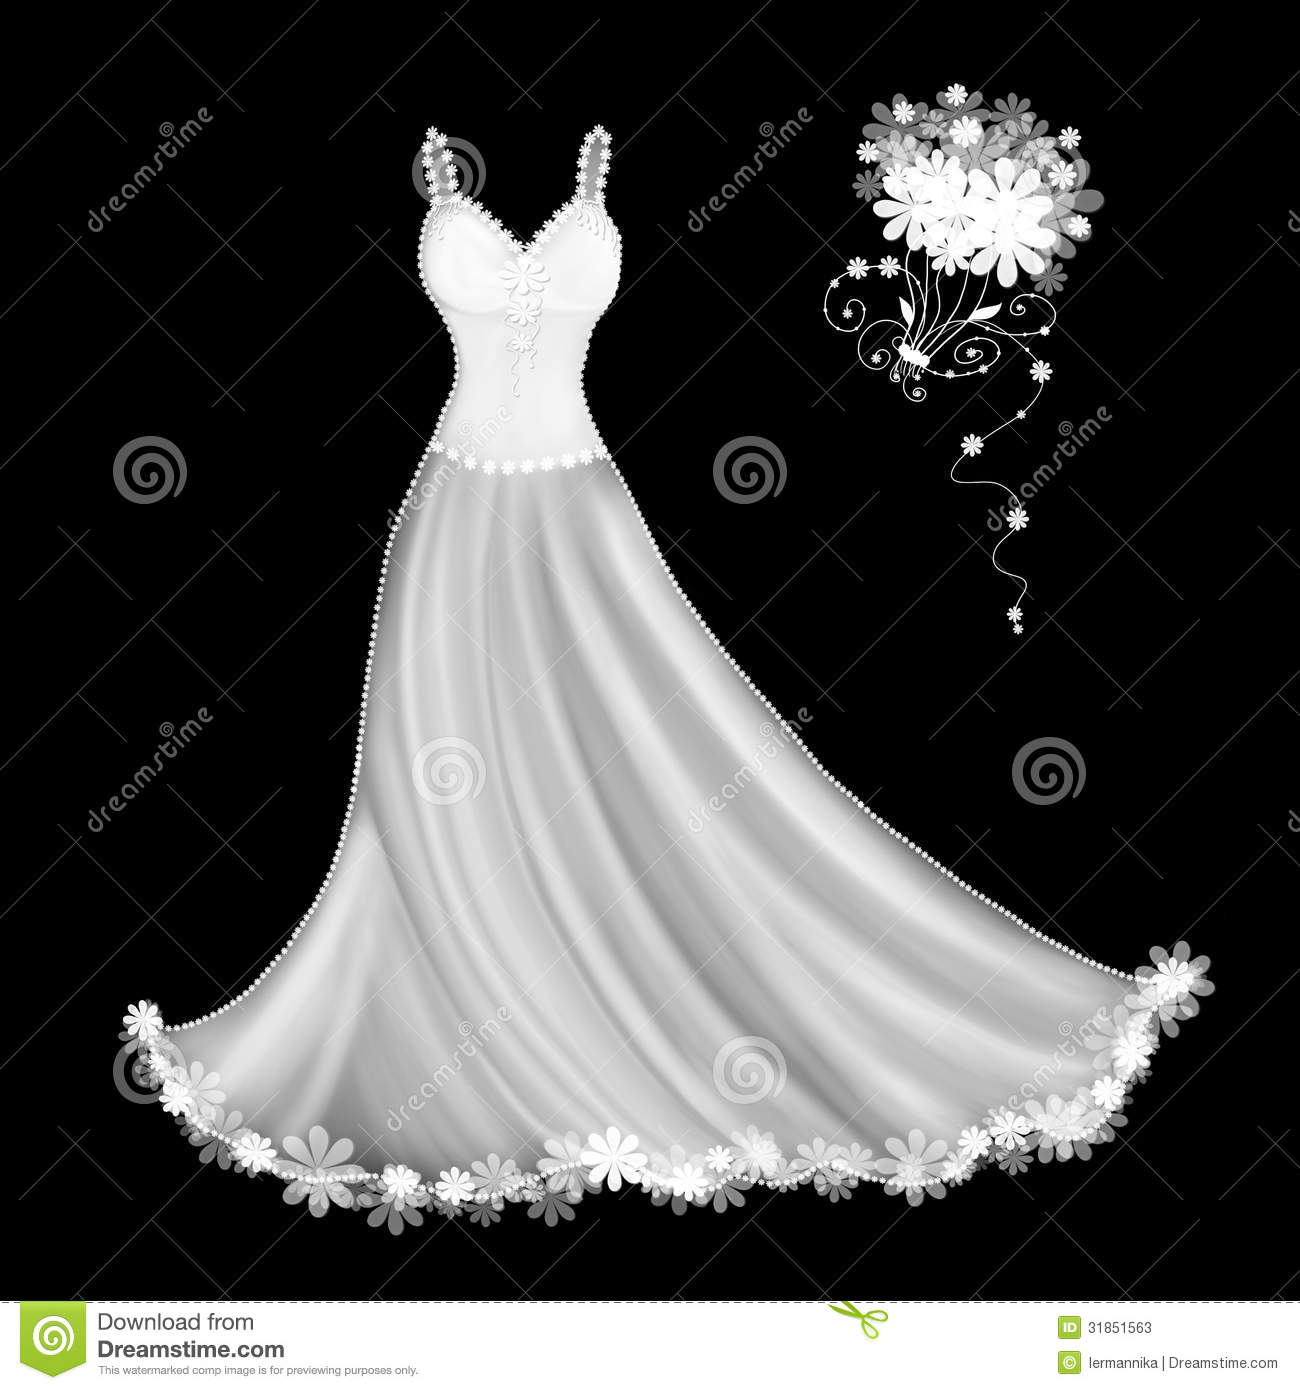 Illustration drawing of a white wedding dress and bouquet